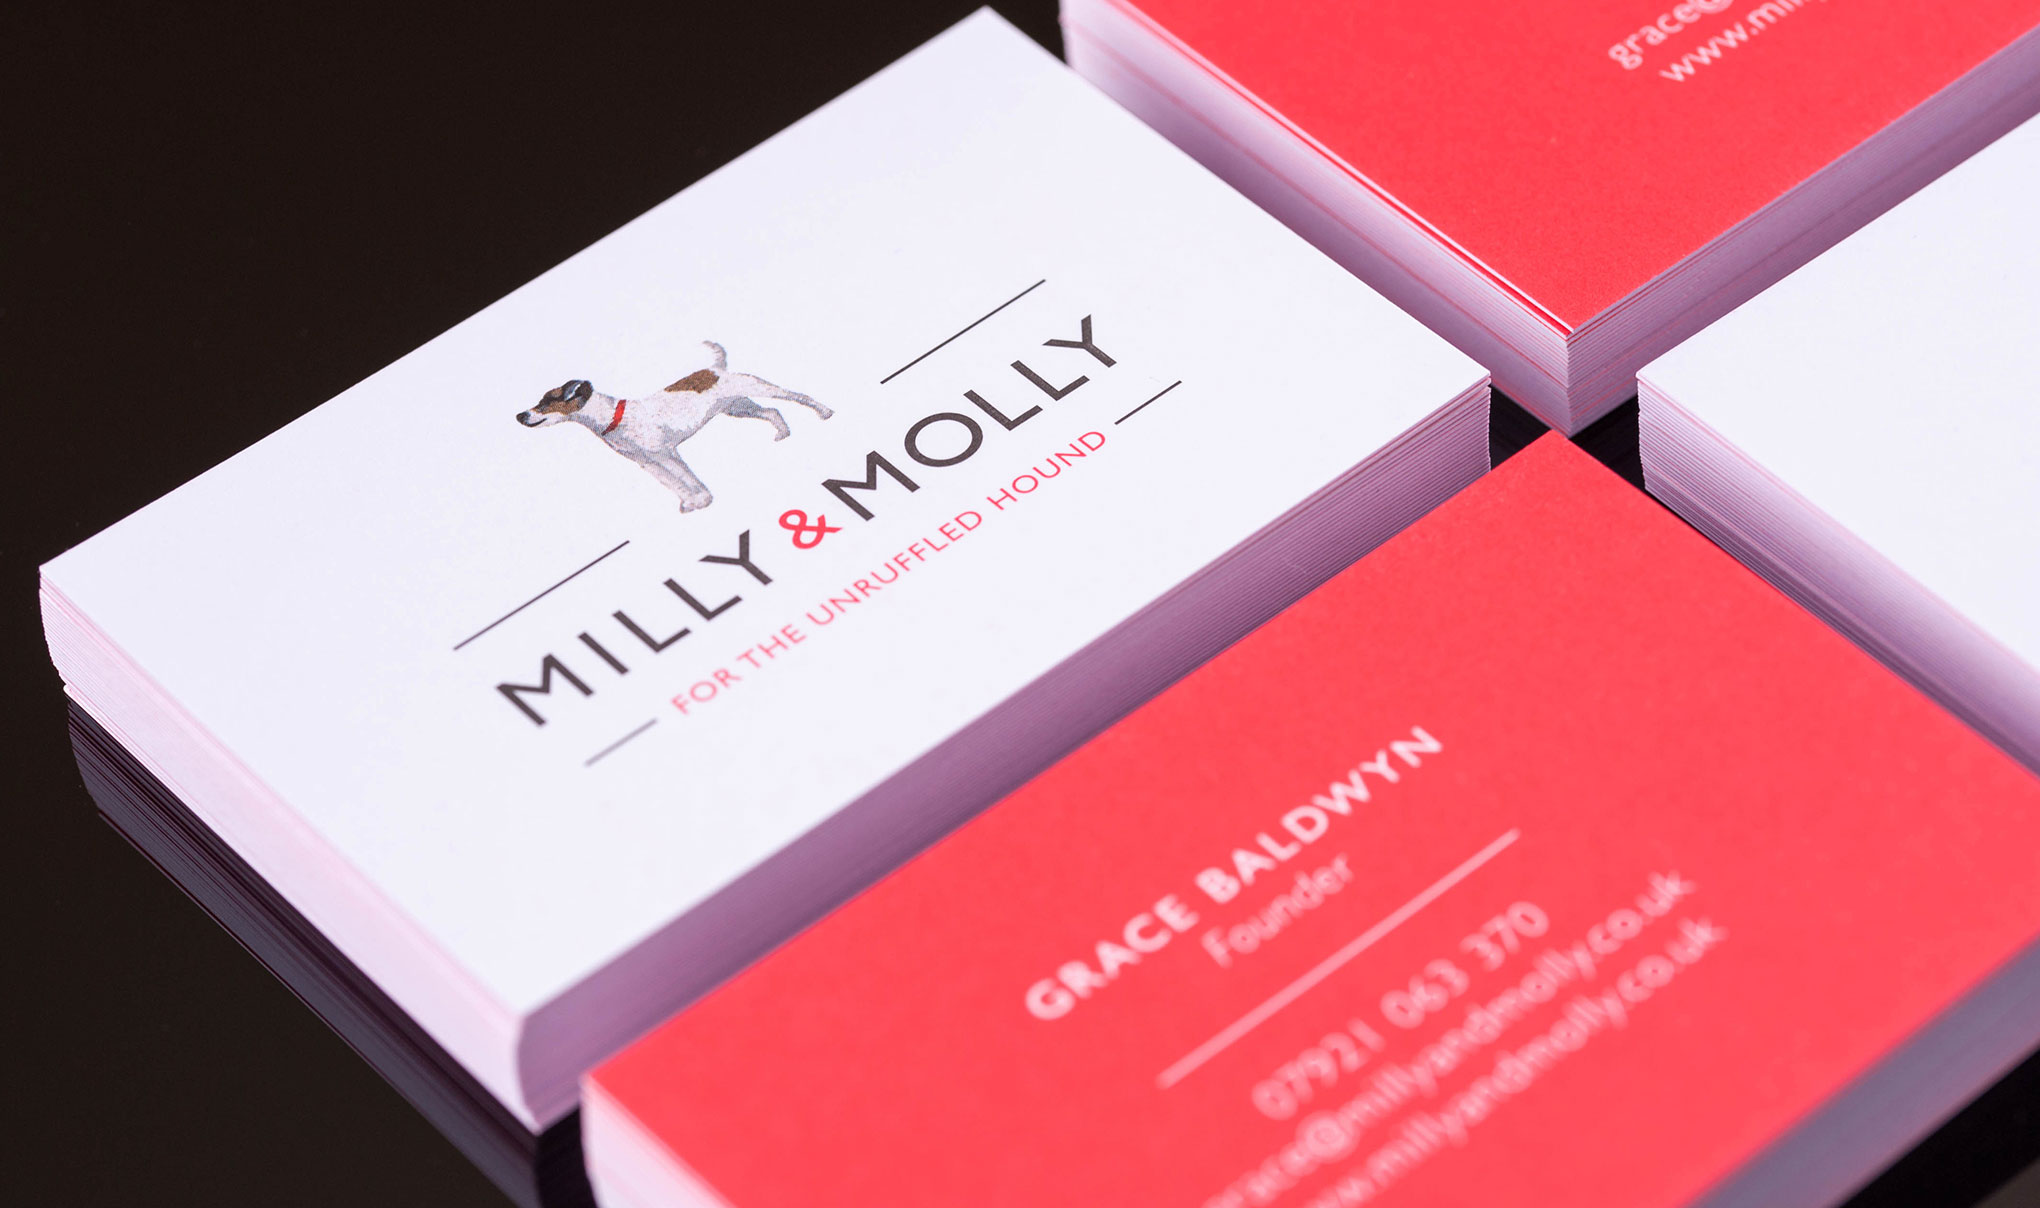 Pet branding & packaging design. Image shows front and back of the business cards. Identity and packaging designed for the brand MILLY & MOLLY by design agency - Flipflop Design Ltd.